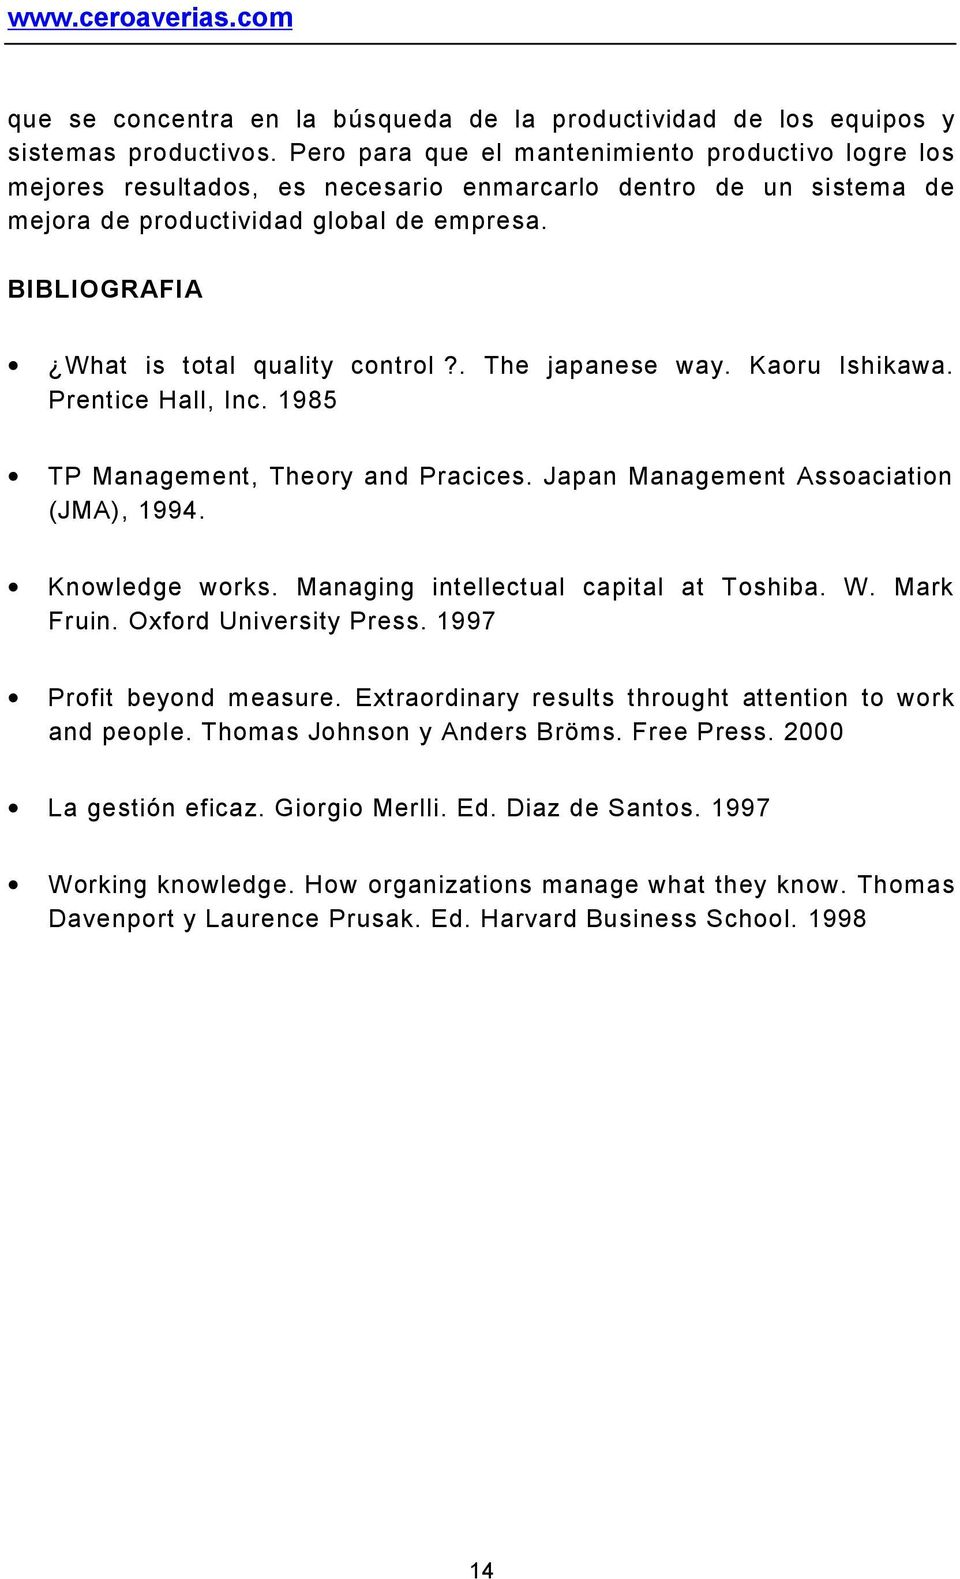 BIBLIOGRAFIA What is total quality control?. The japanese way. Kaoru Ishikawa. Prentice Hall, Inc. 1985 TP Management, Theory and Pracices. Japan Management Assoaciation (JMA), 1994. Knowledge works.